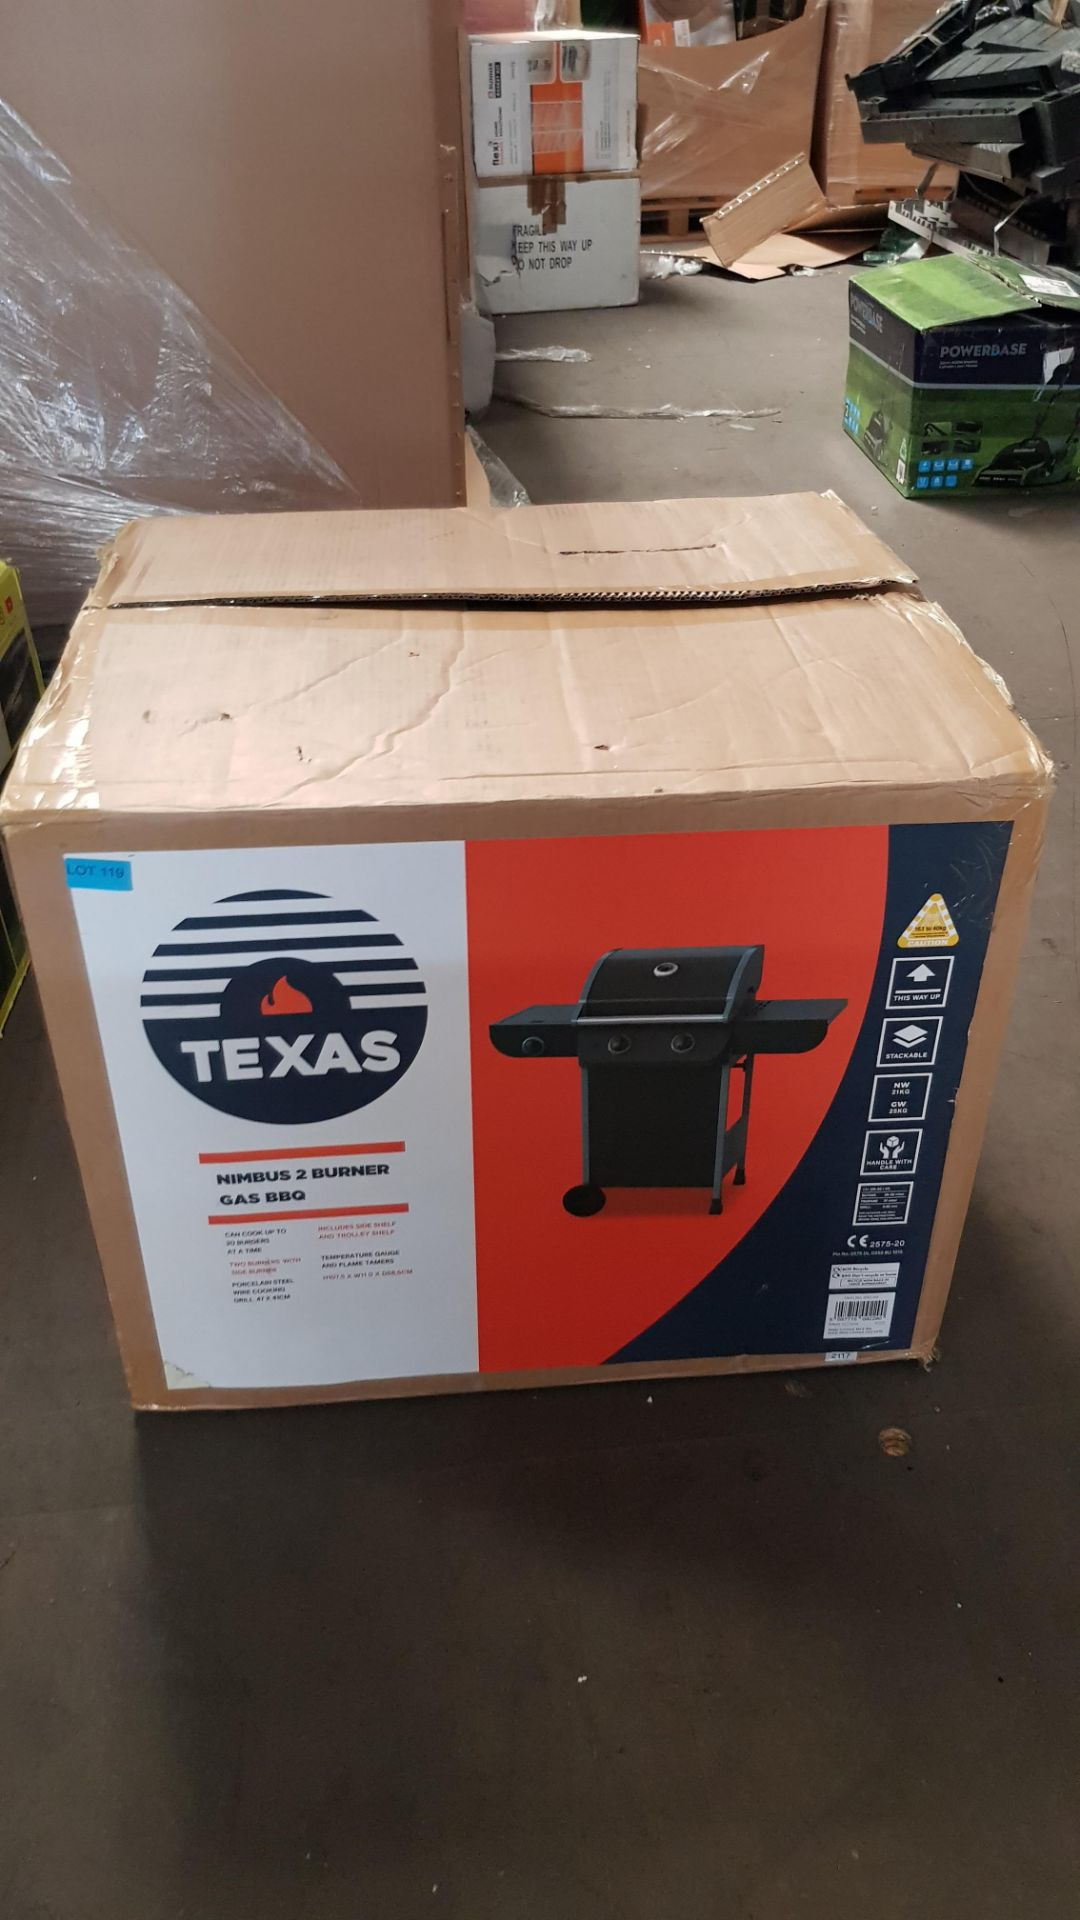 (P3) 1x Texas Nimbus 2 Burner Gas BBQ. Item Appears As New, In Original Packaging With Fixings See - Image 3 of 4